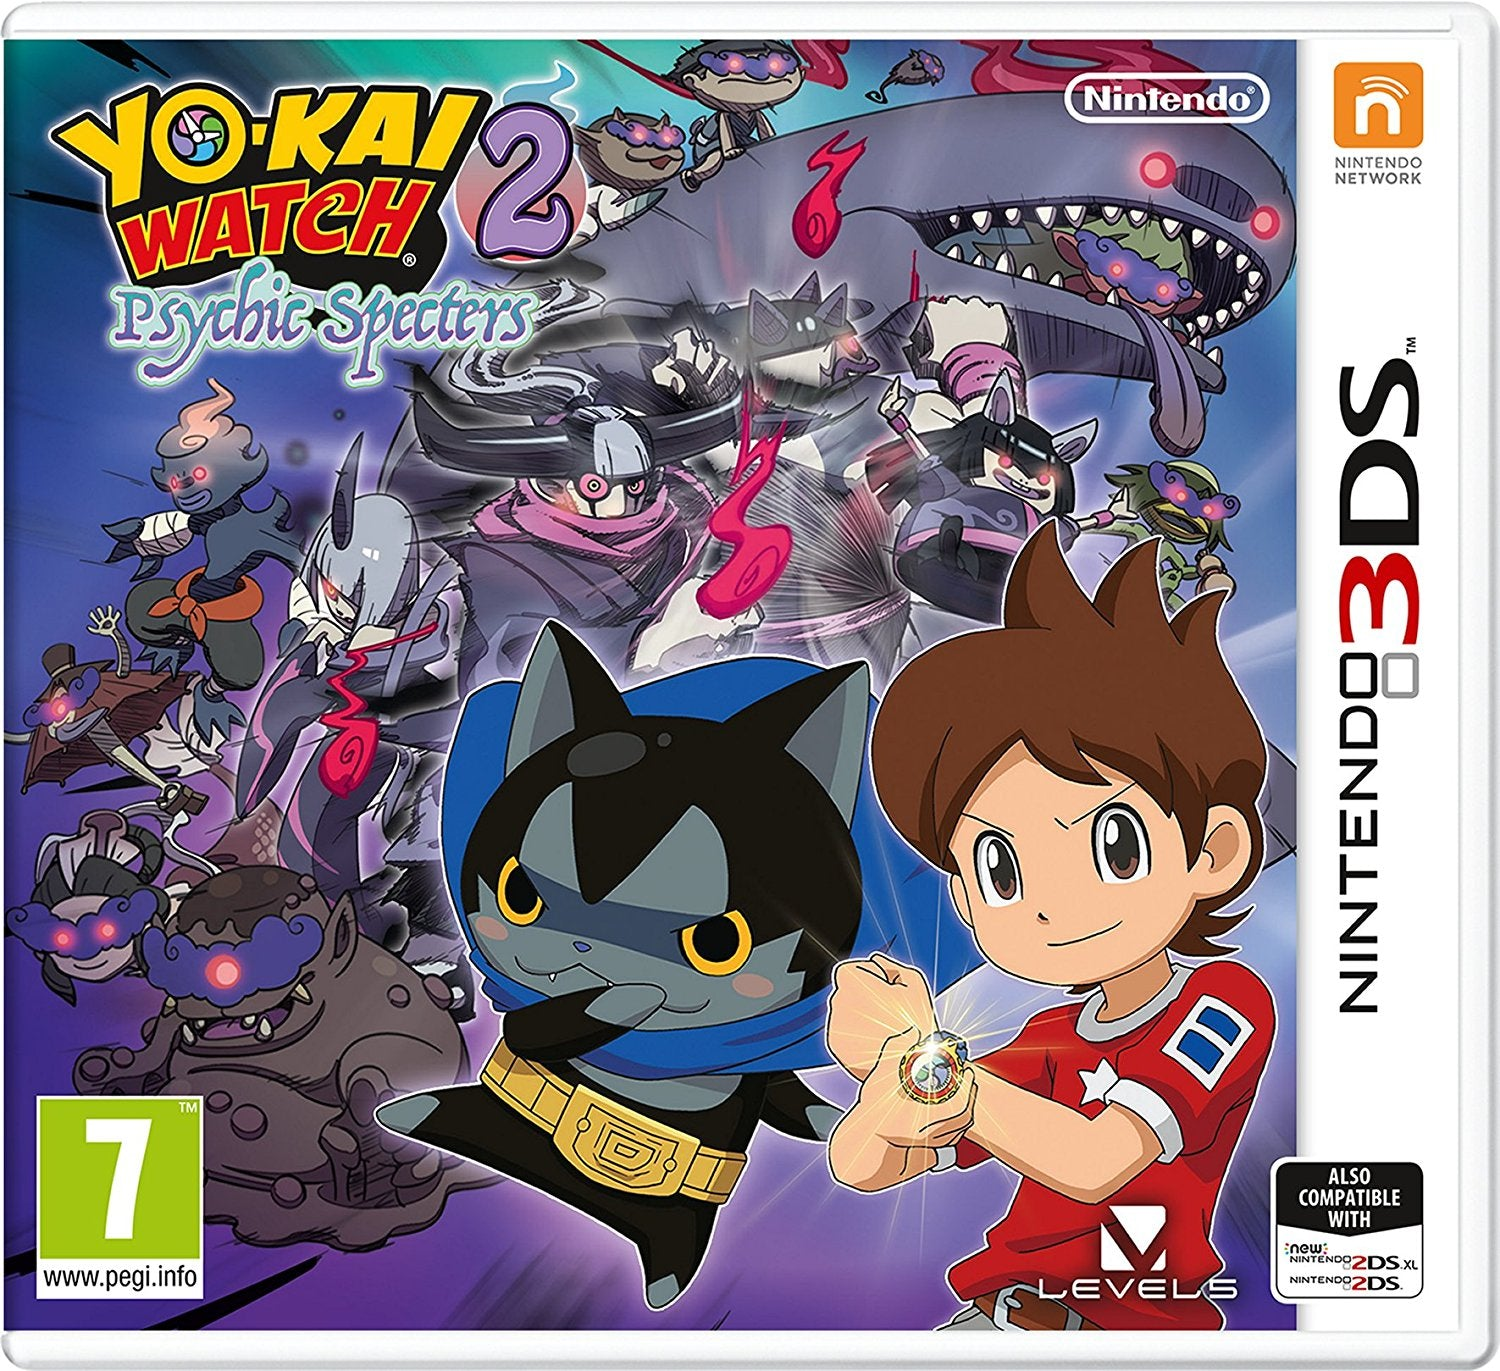 YO-KAI WATCH 2: Psychic Specters - 3DS